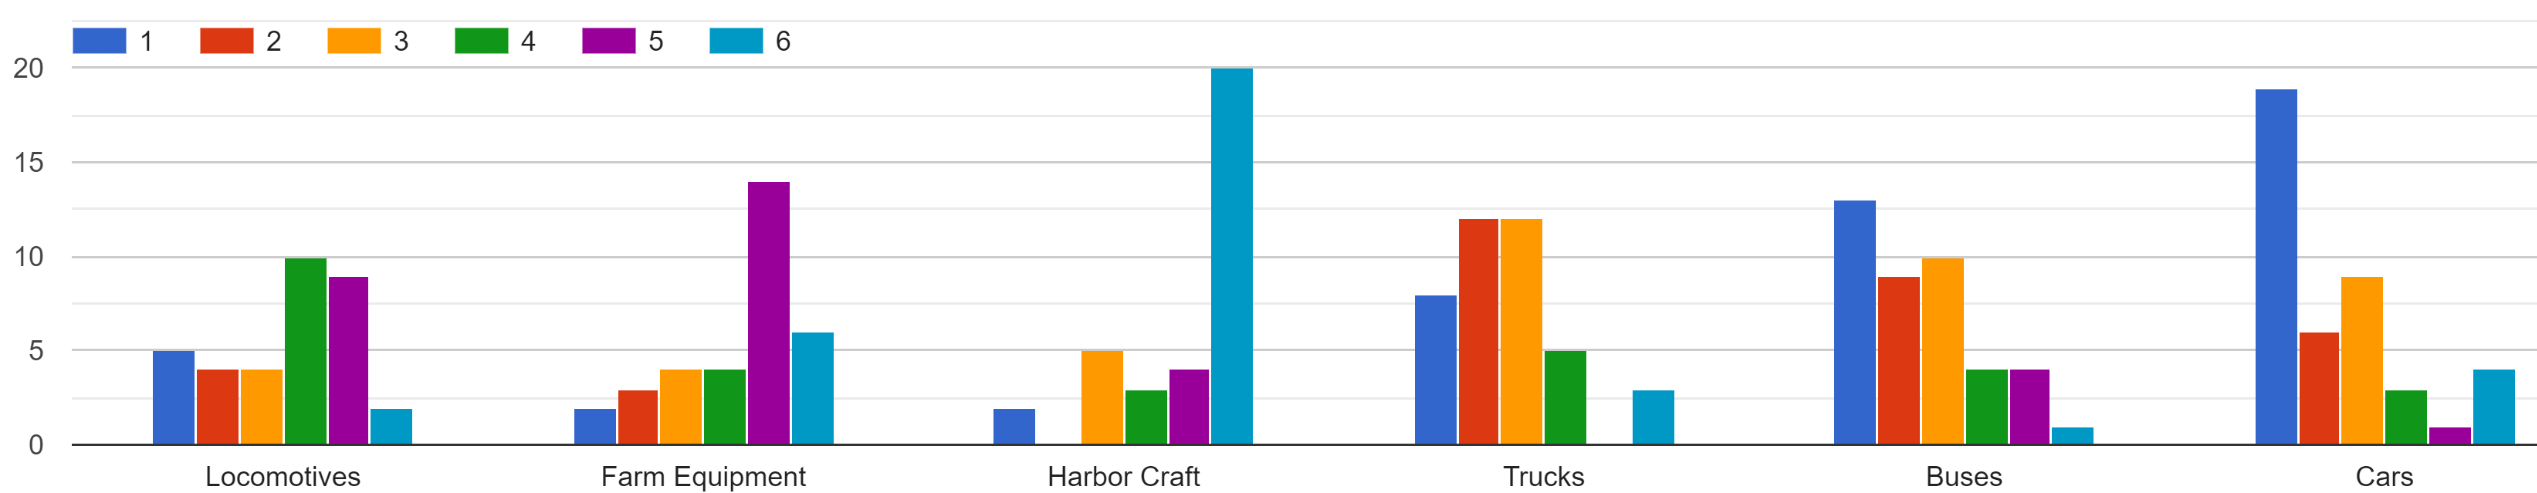 Graph showing community needs ranking #1 Cars, #2 Buses, #3 Trucks, #4 Locomotives, #5 Farm Equipment, #6 Harbor Craft